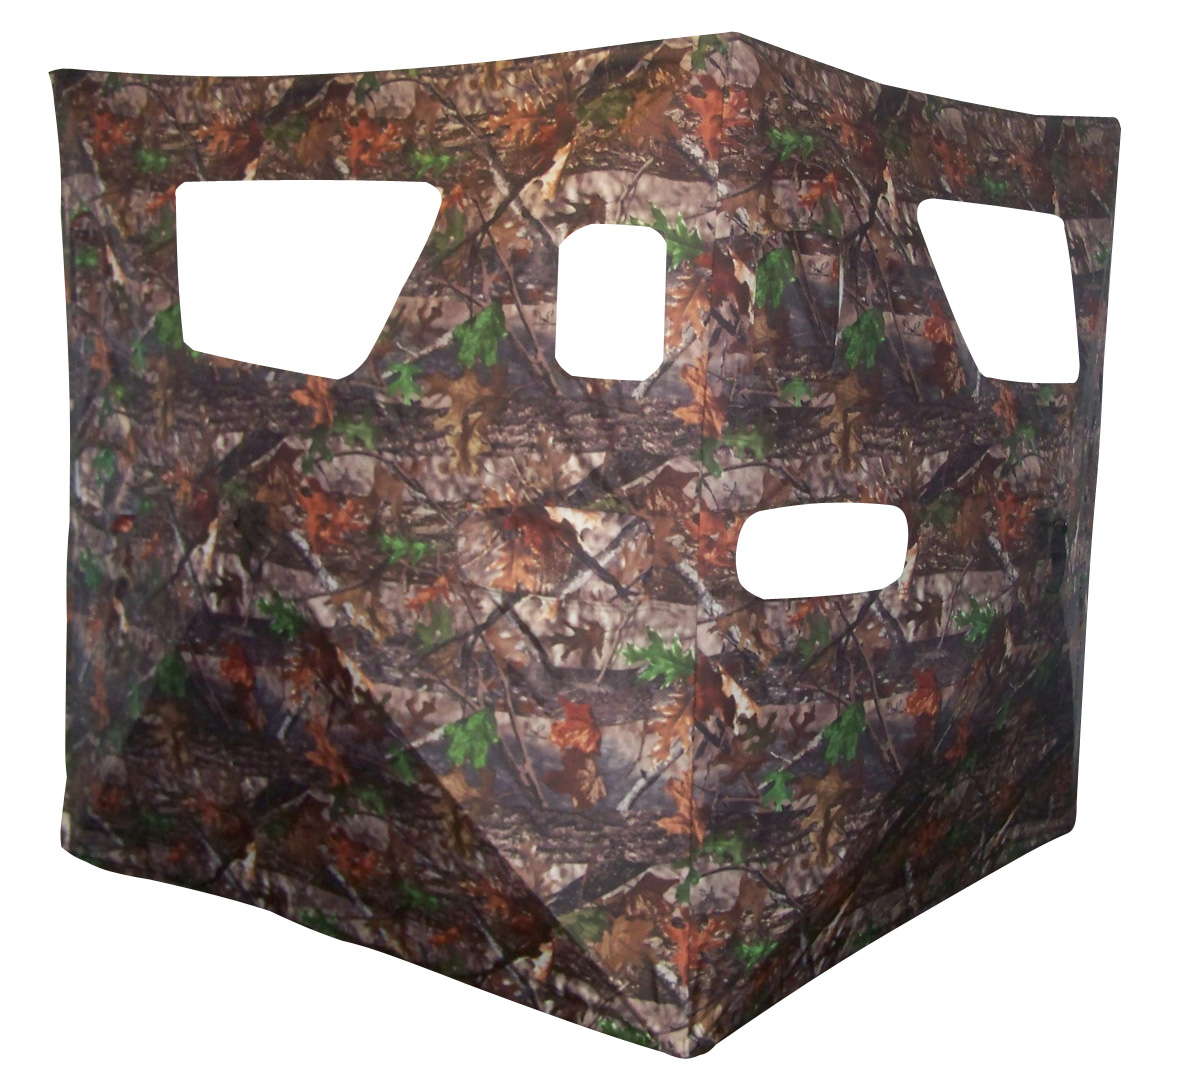 up ground reviews hunting blinds outhouse guide using pop walmart blind gear fascinating x polyester at